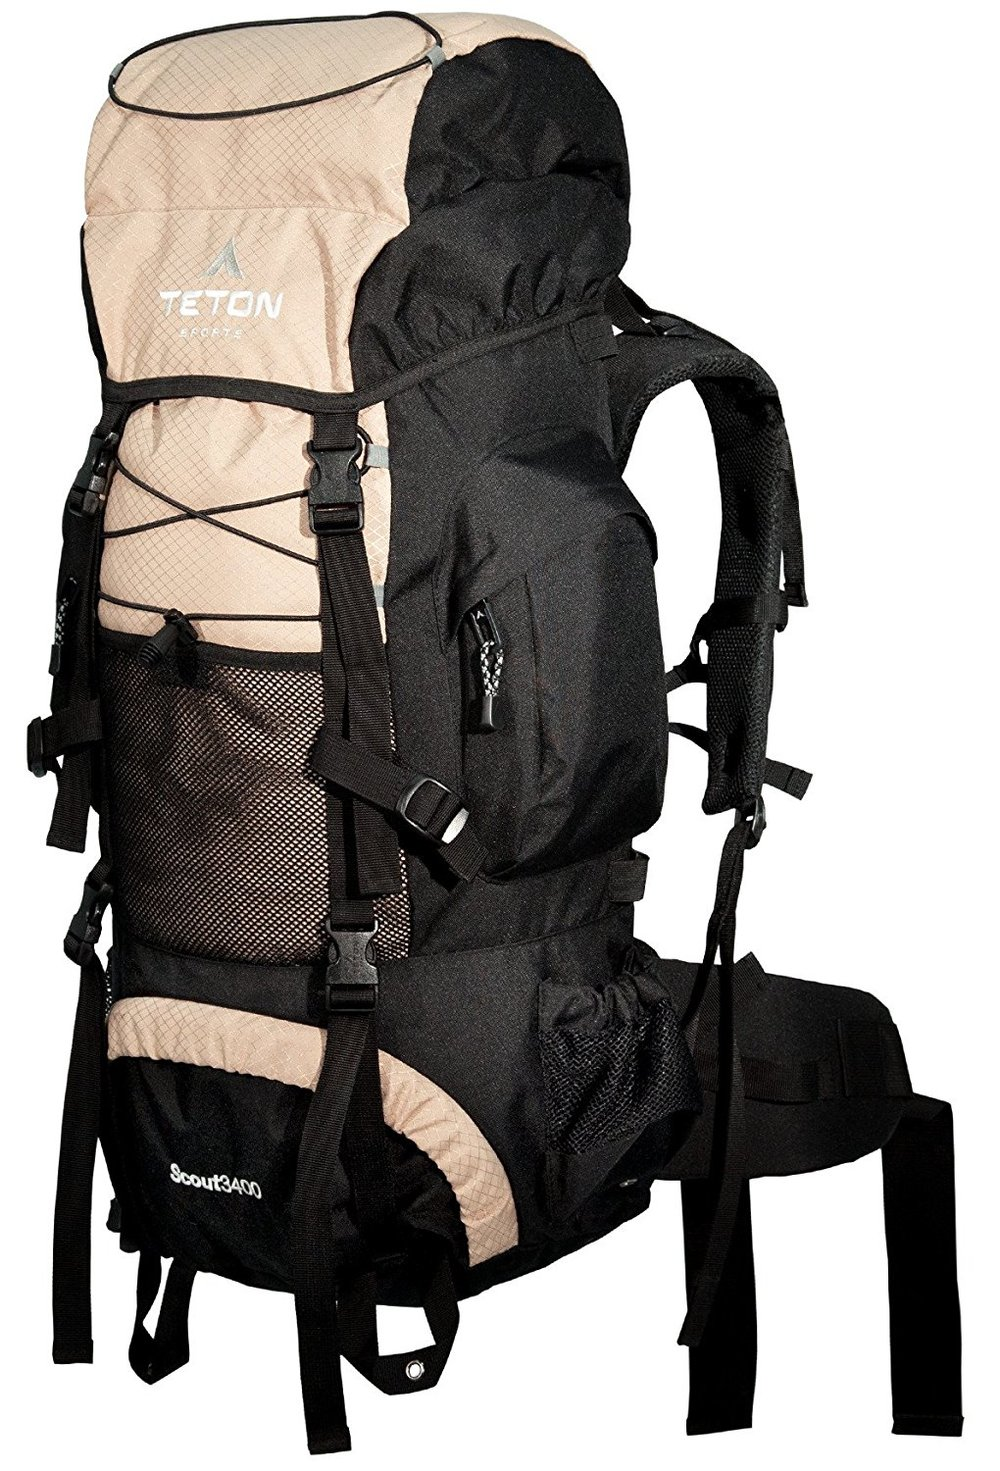 eco backpack - I still haven't found an Eco Backpack the size of my Teton Backpack, which really has it all if you ask me. But when I find it, I will be the first to buy it.   Click here for this beauty Teton Backpack ($ 69,99)